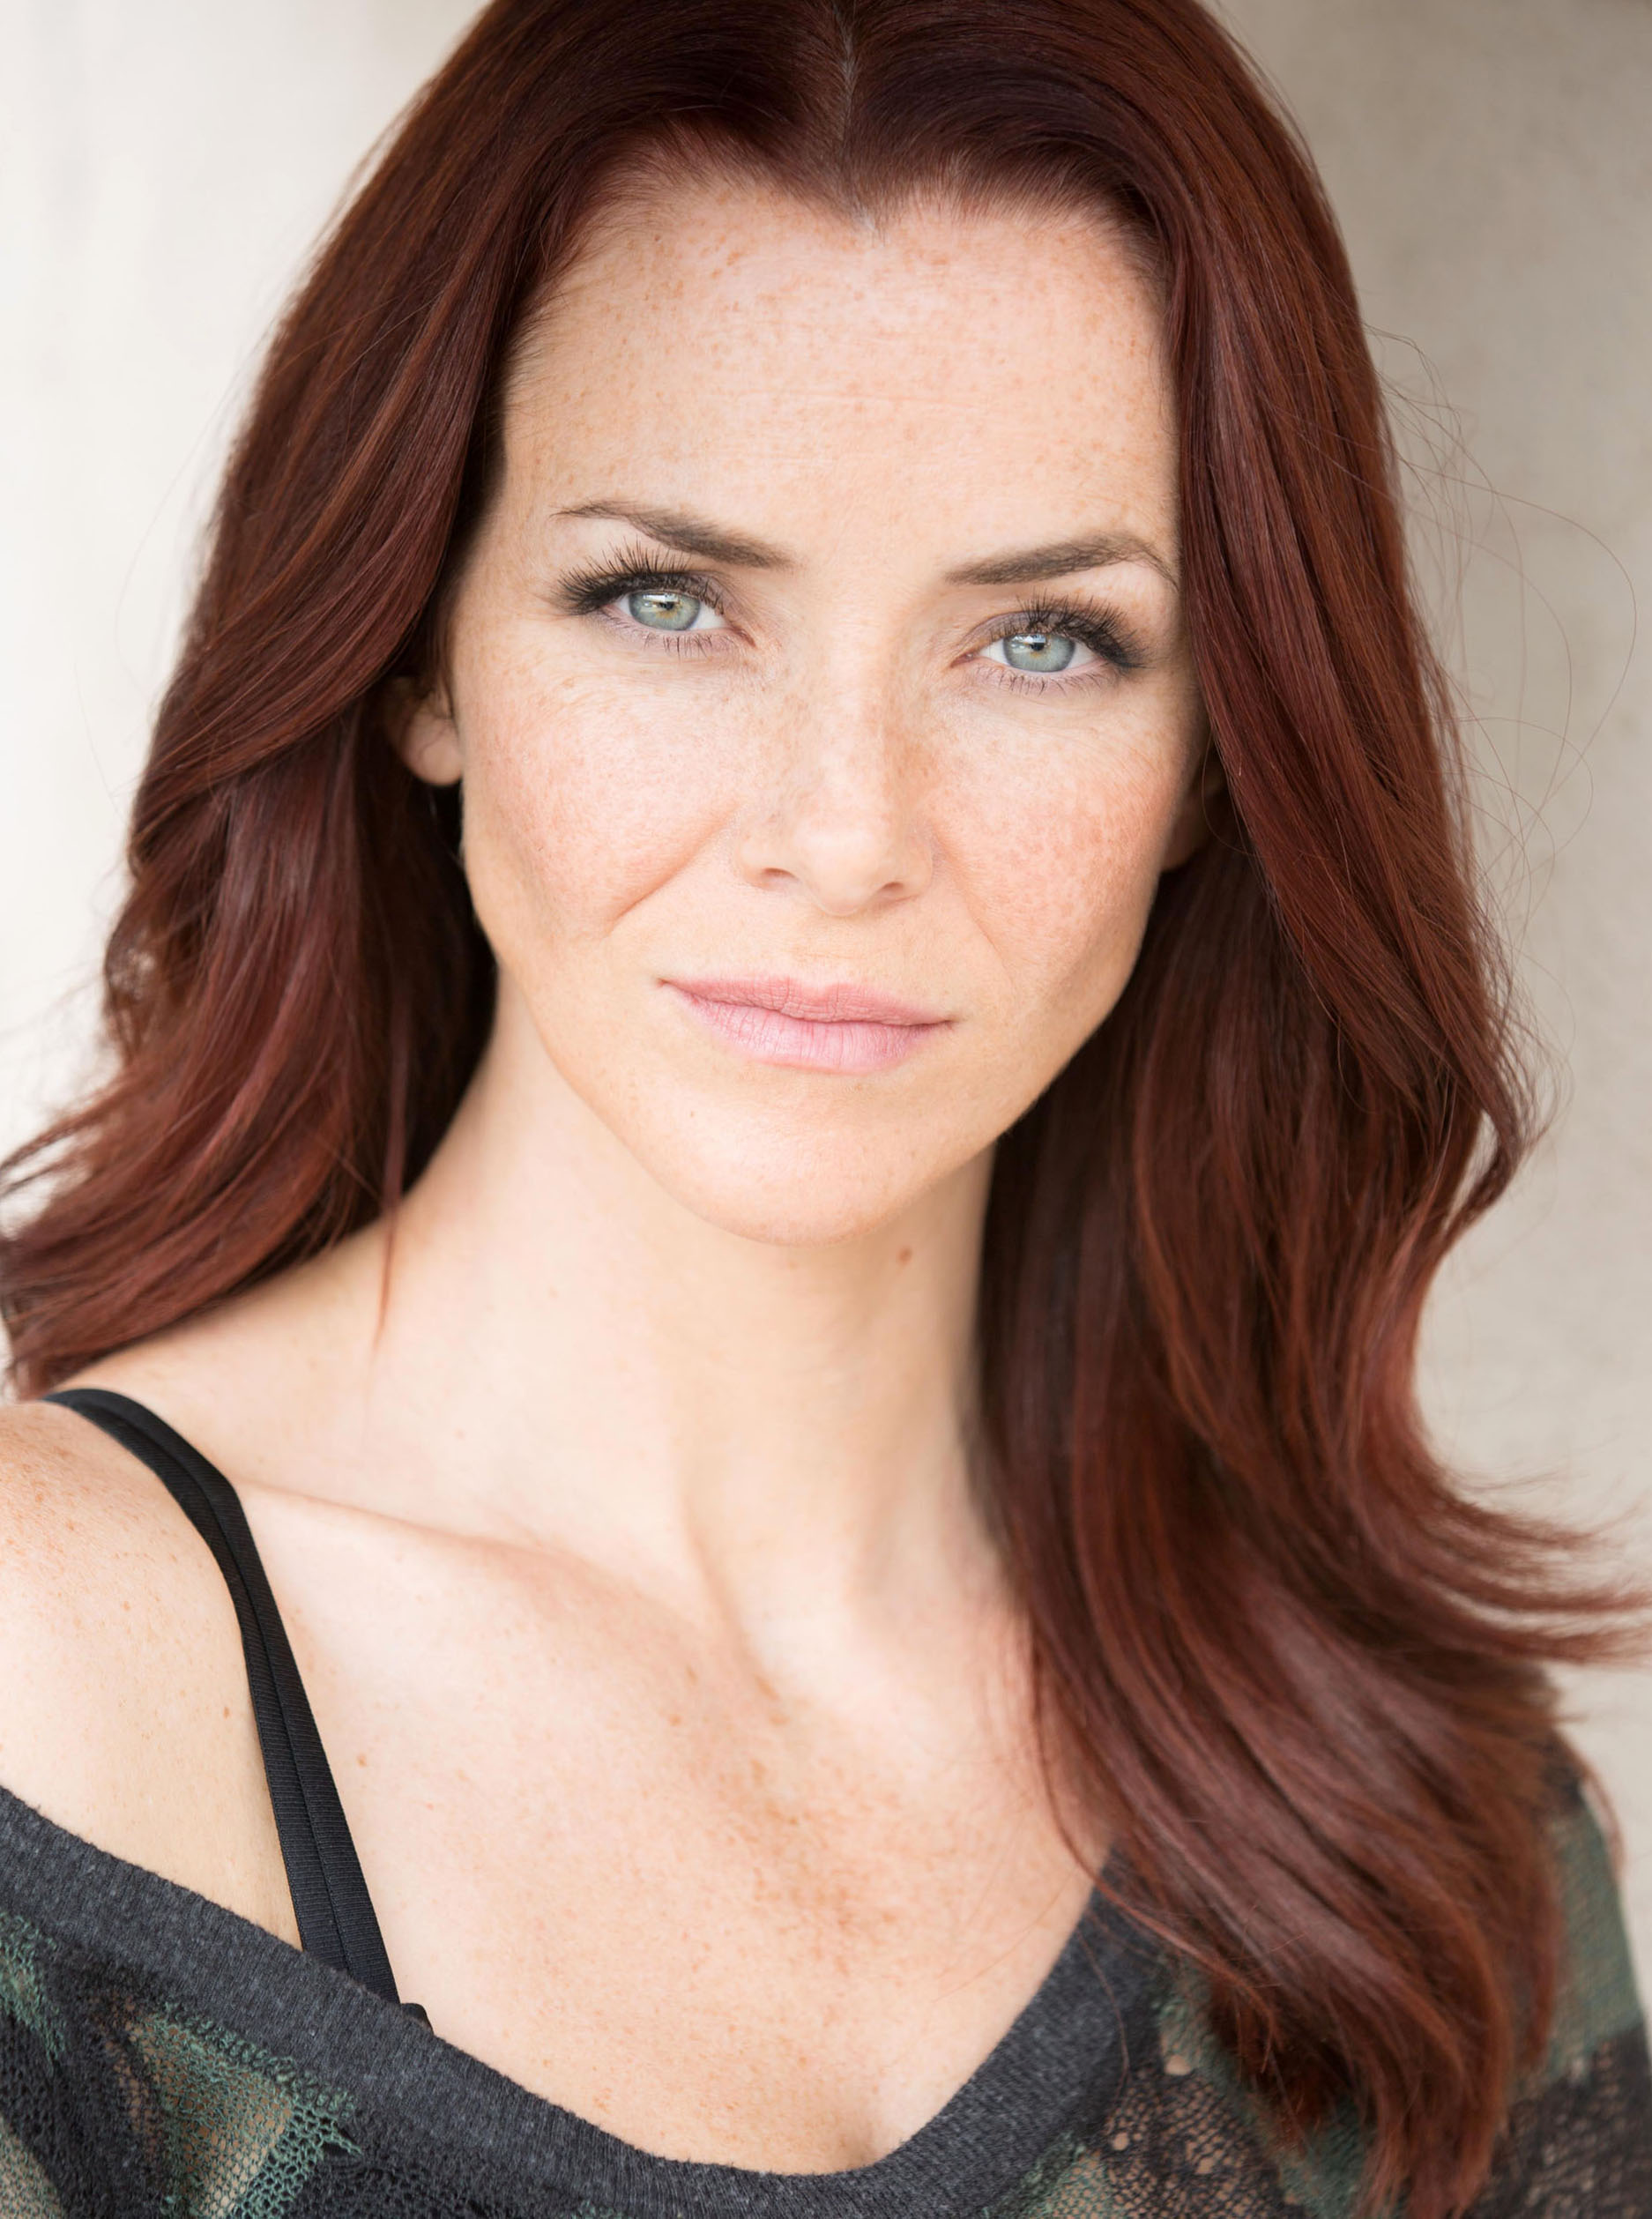 annie wersching - photo #36